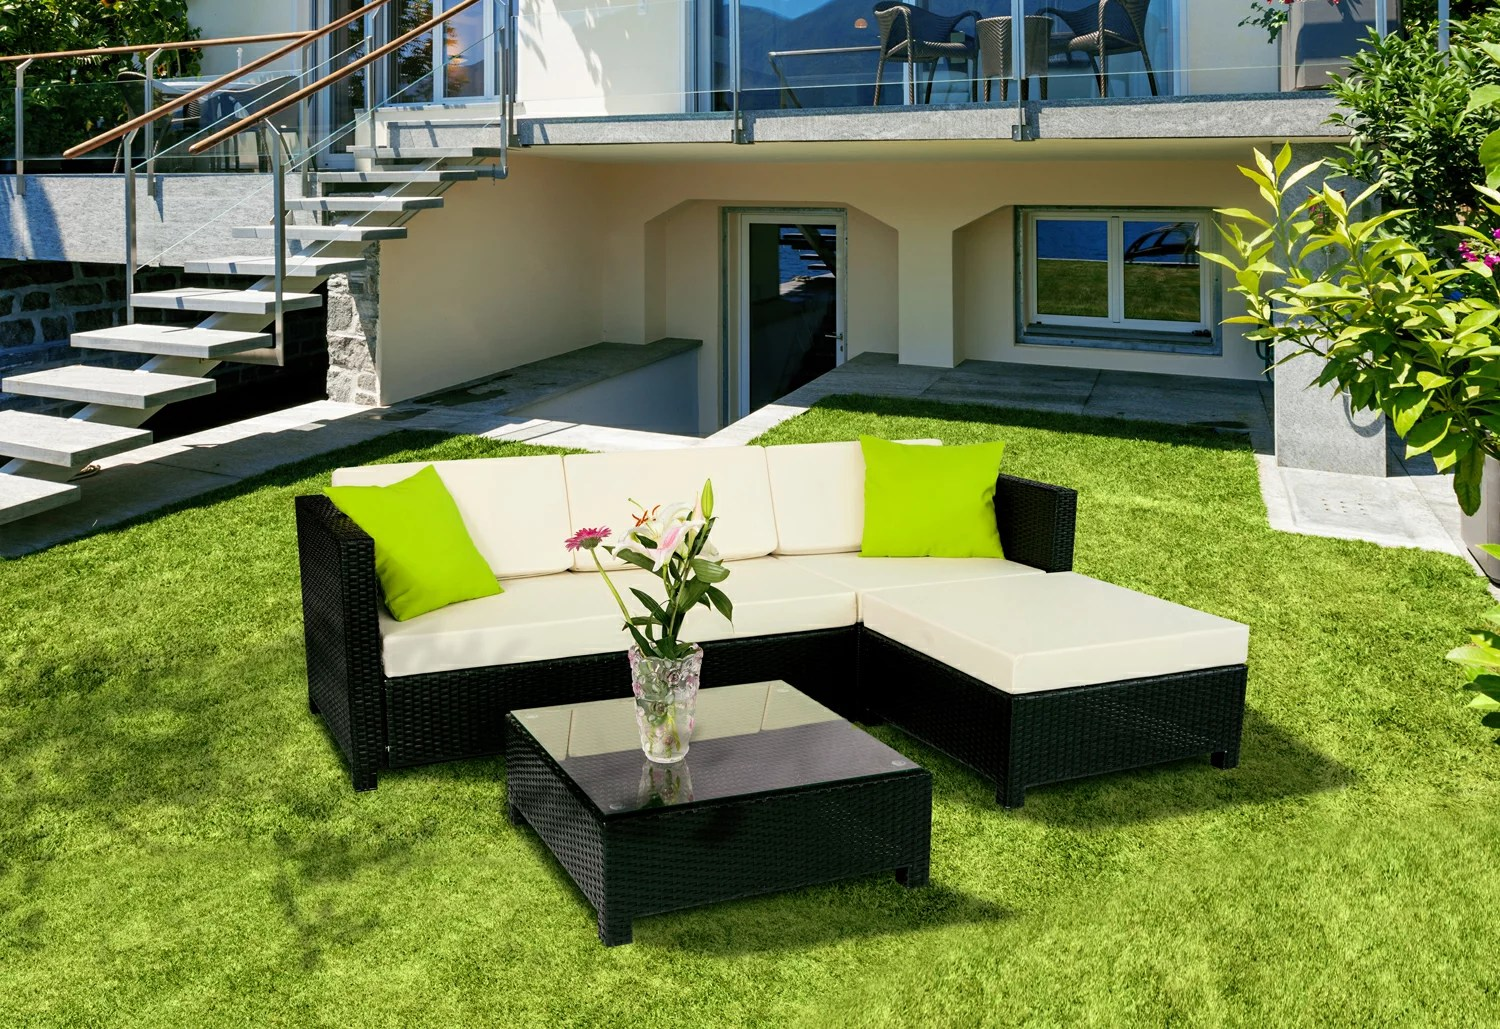 Outdoor Covers Mcombo 5pc Luxury Wicker Sectional Outdoor Sofa Aluminum Frame Furniture 2 Sets Covers